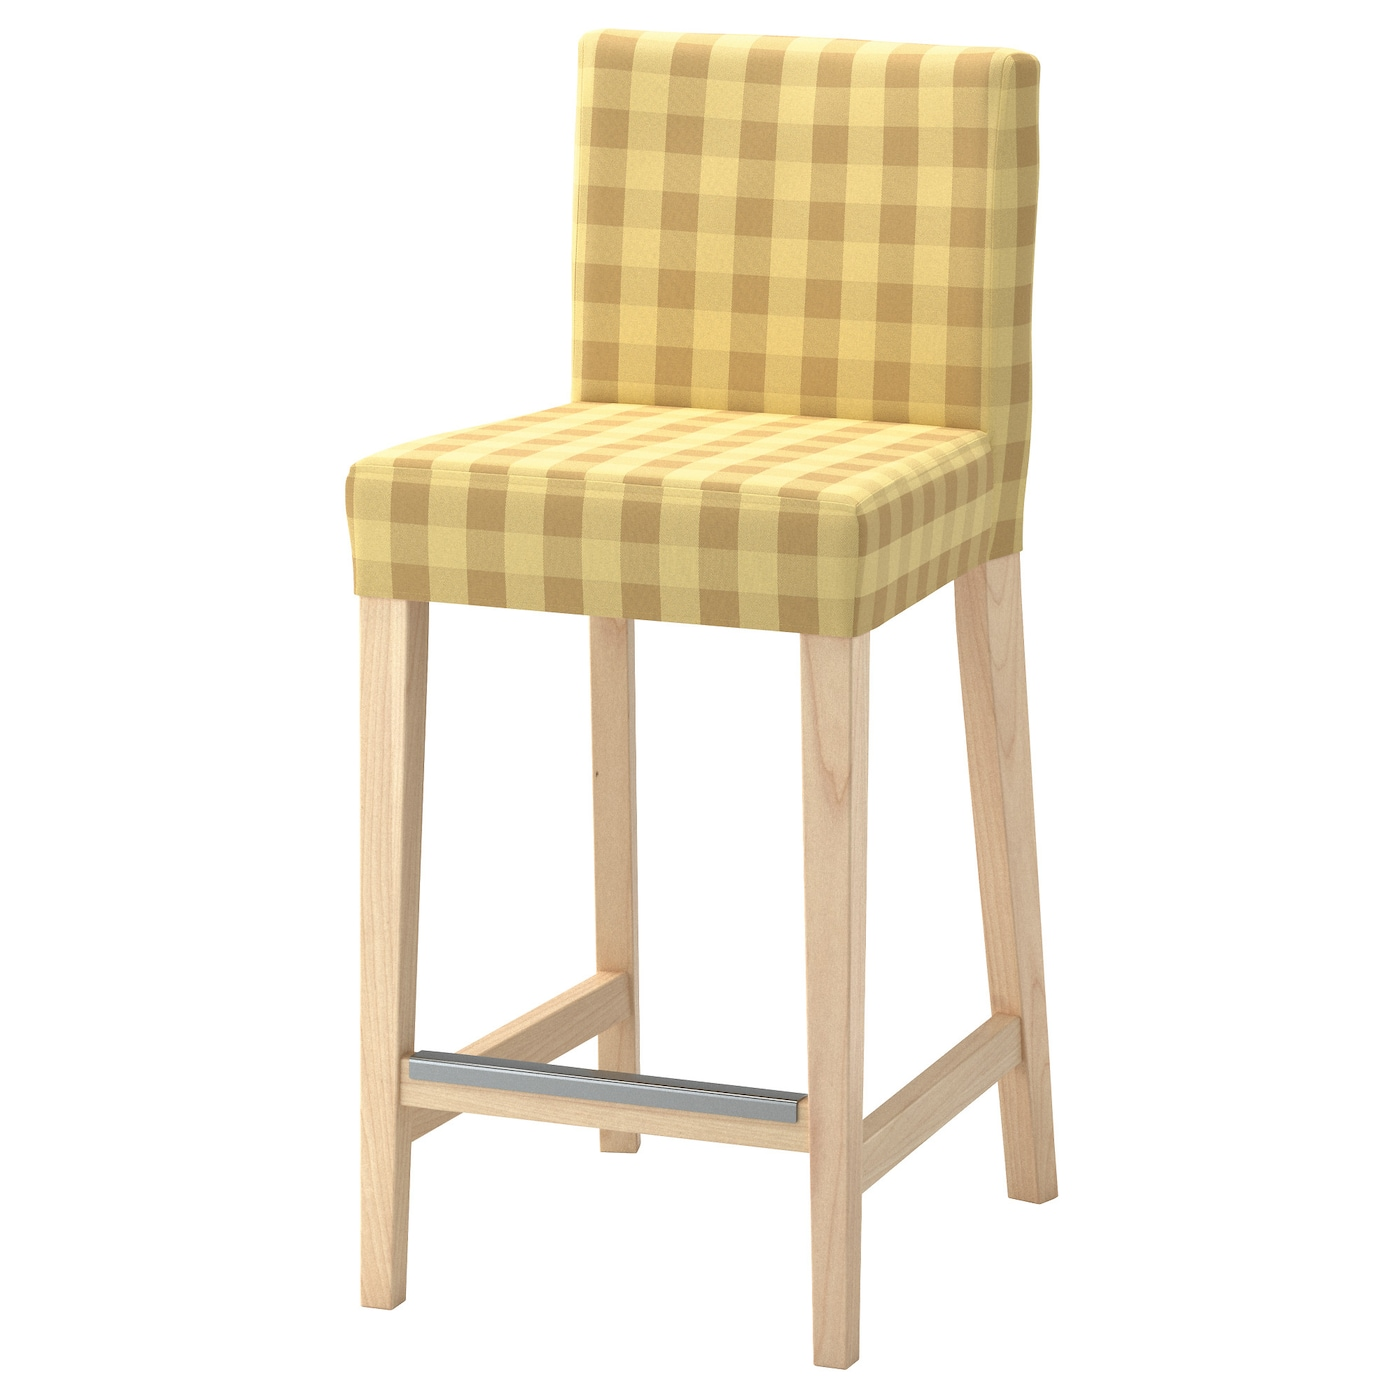 henriksdal tabouret de bar dossier bouleau skaftarp jaune 63 cm ikea. Black Bedroom Furniture Sets. Home Design Ideas